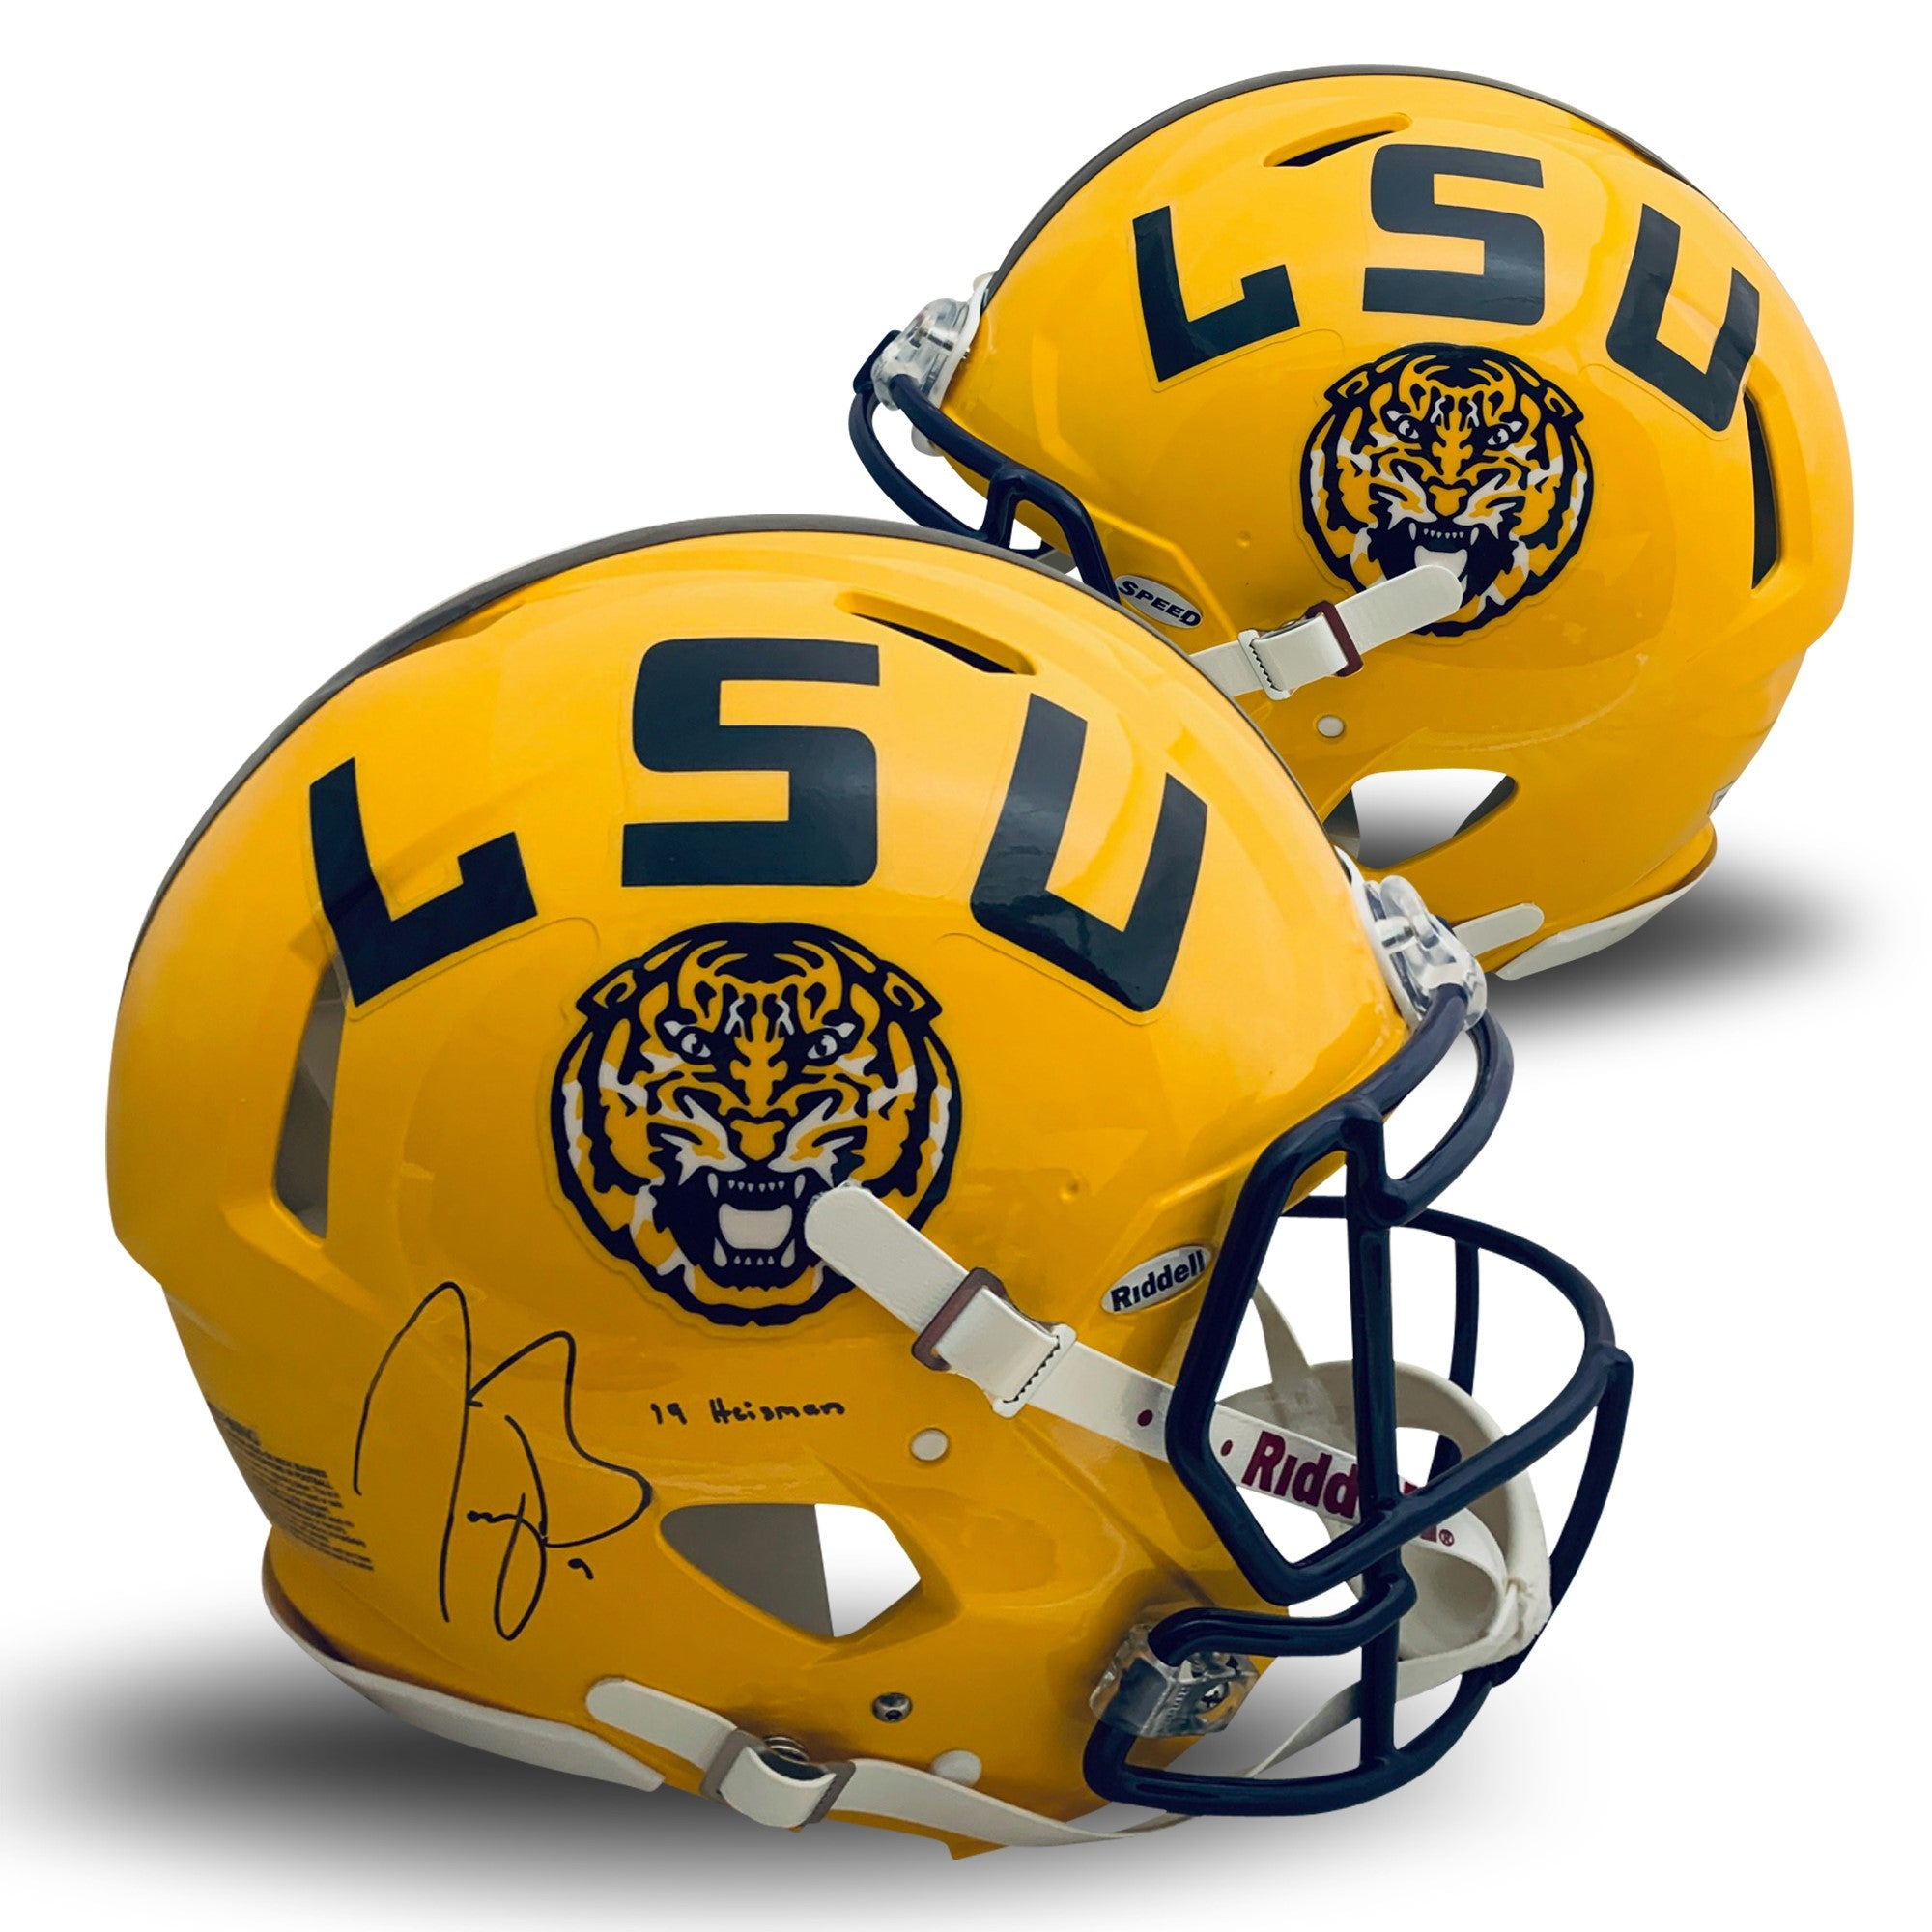 Joe Burrow Autographed LSU Tigers Signed Full Size Authentic Speed Helmet 2019 HEISMAN Fanatics Authentic COA-Powers Sports Memorabilia